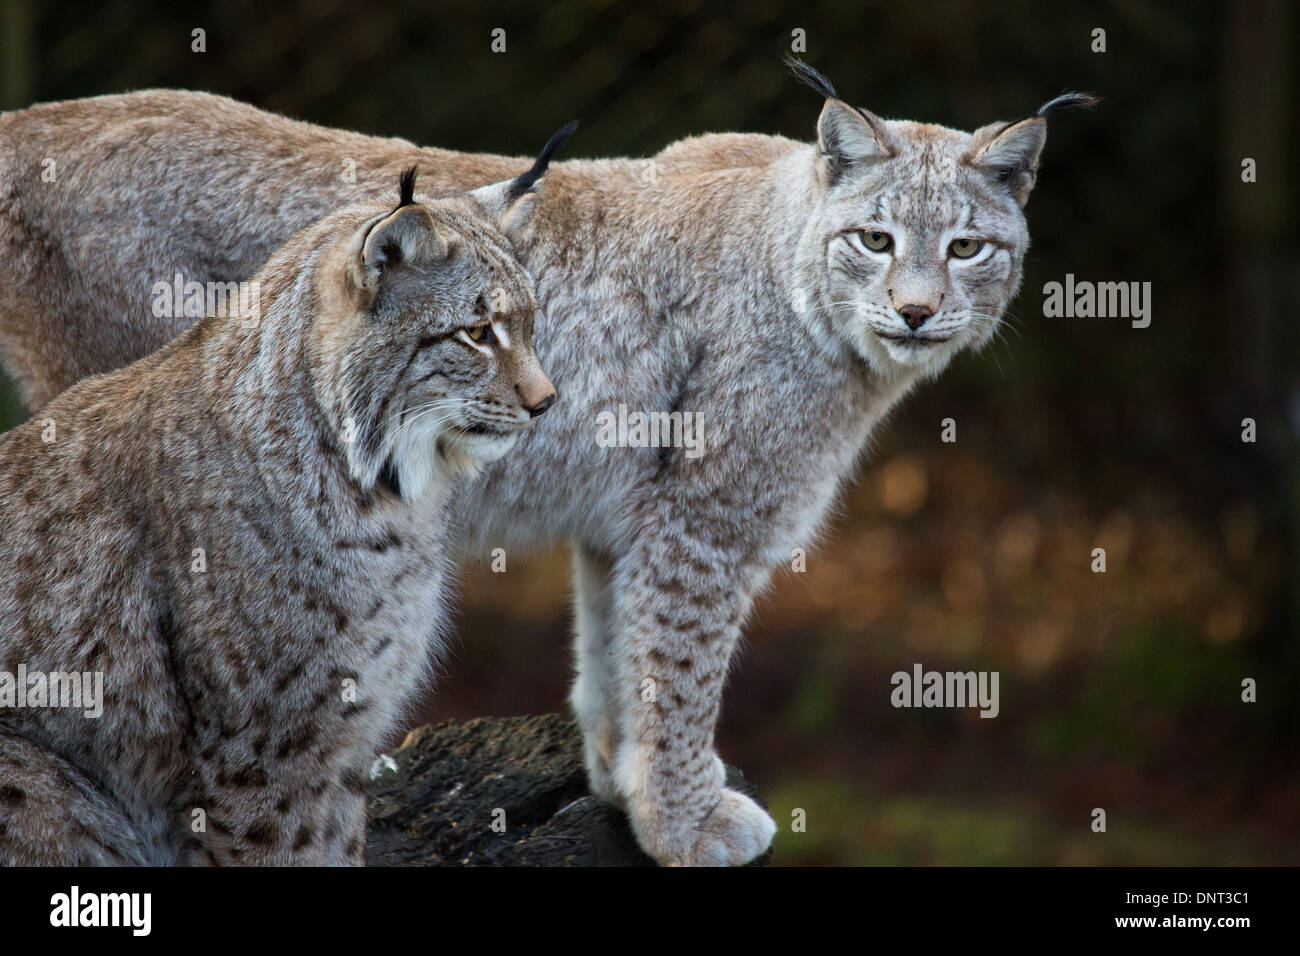 Captive Eurasian Lynx in a zoo - Stock Image